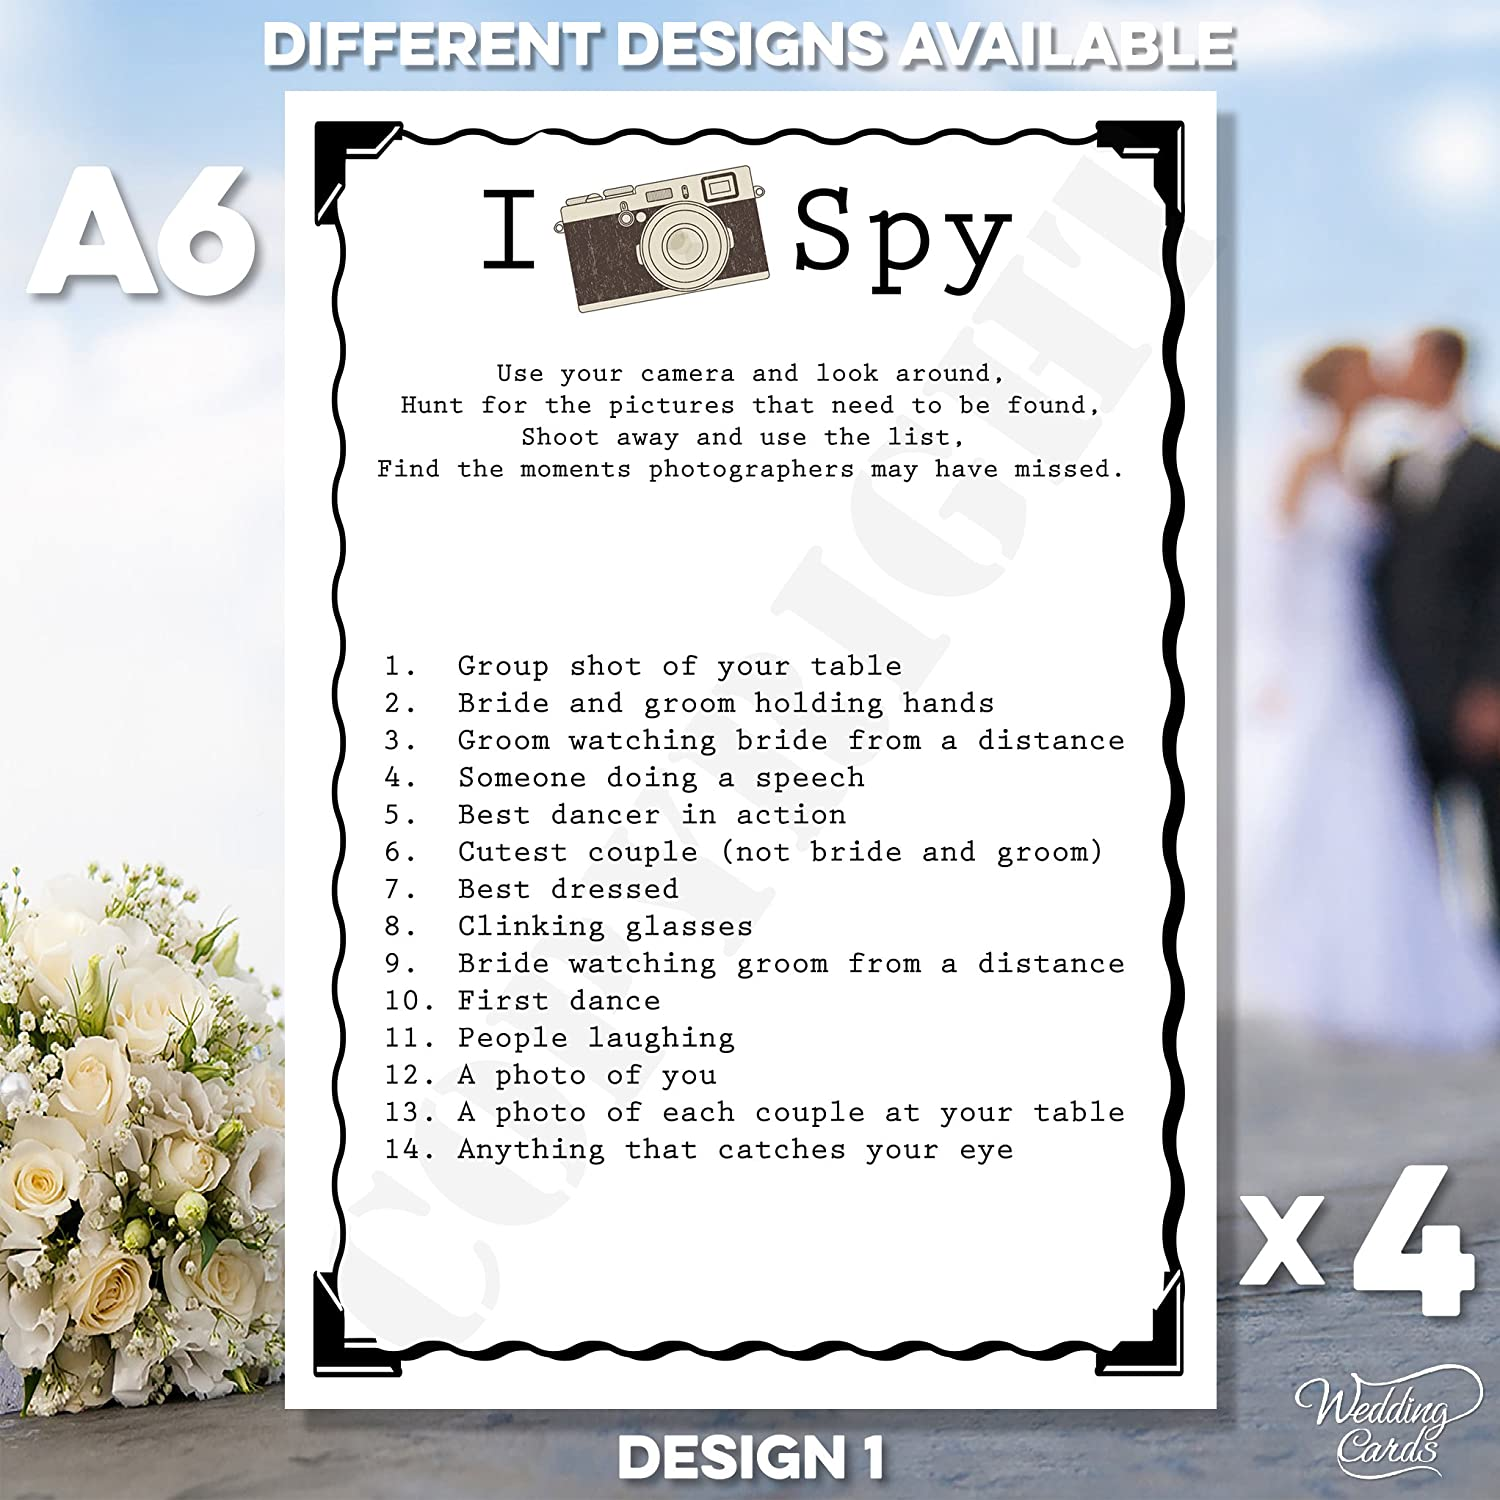 4 x Wedding I Spy Game Camera Kids Table Activity Favour Personalised Wedding Novelty Keepsake Shabby Chic Vintage Sign Poster Children Memory Ceremony Any Size Any Colour Any Text Cards A4 A5 A6 A7 Wedding Cards